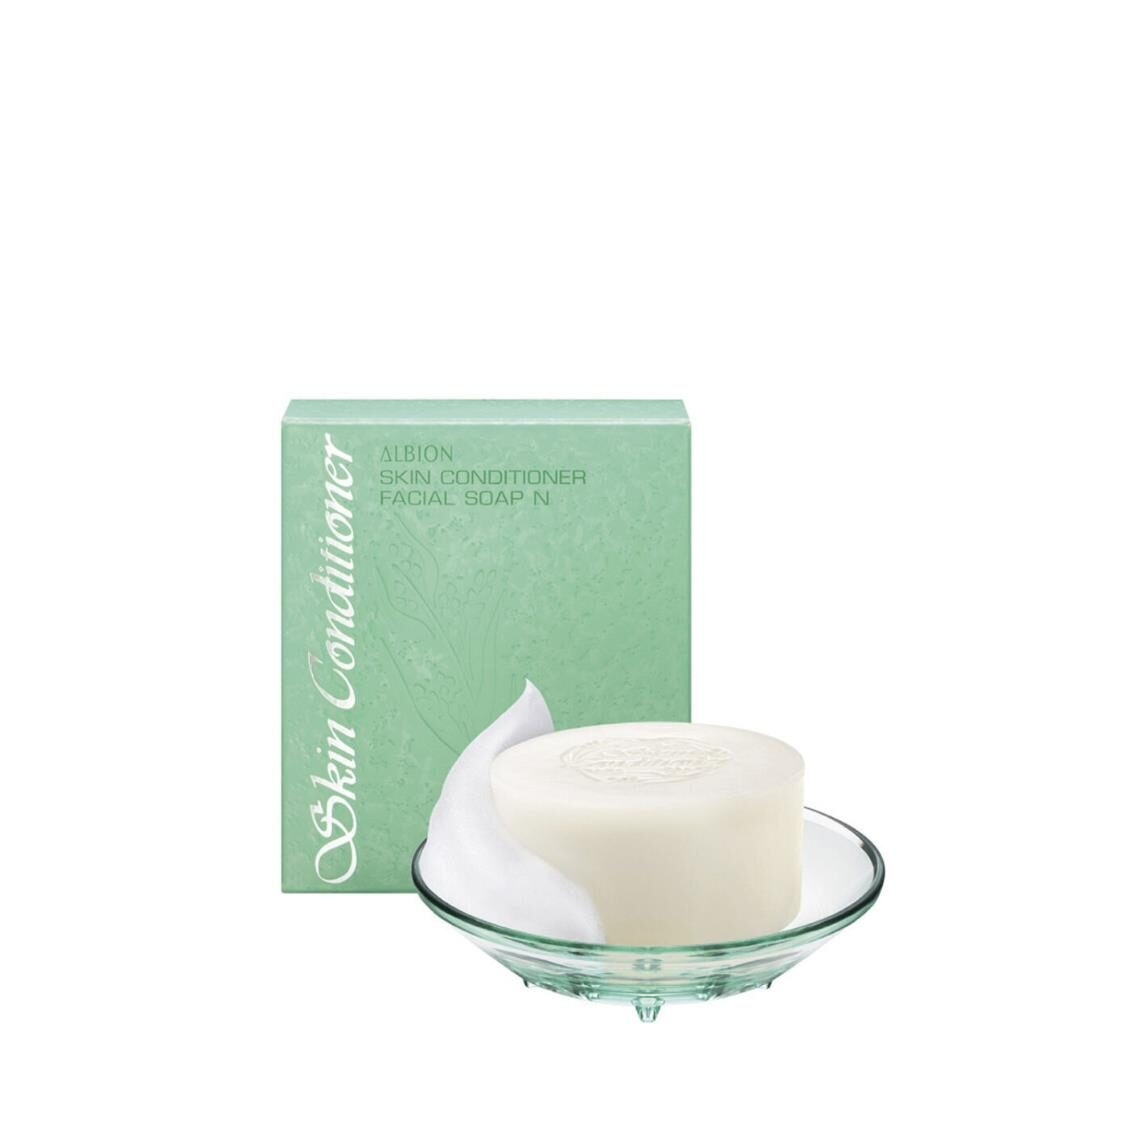 ALBION Skin Conditioner Essential Facial Soap N 100g